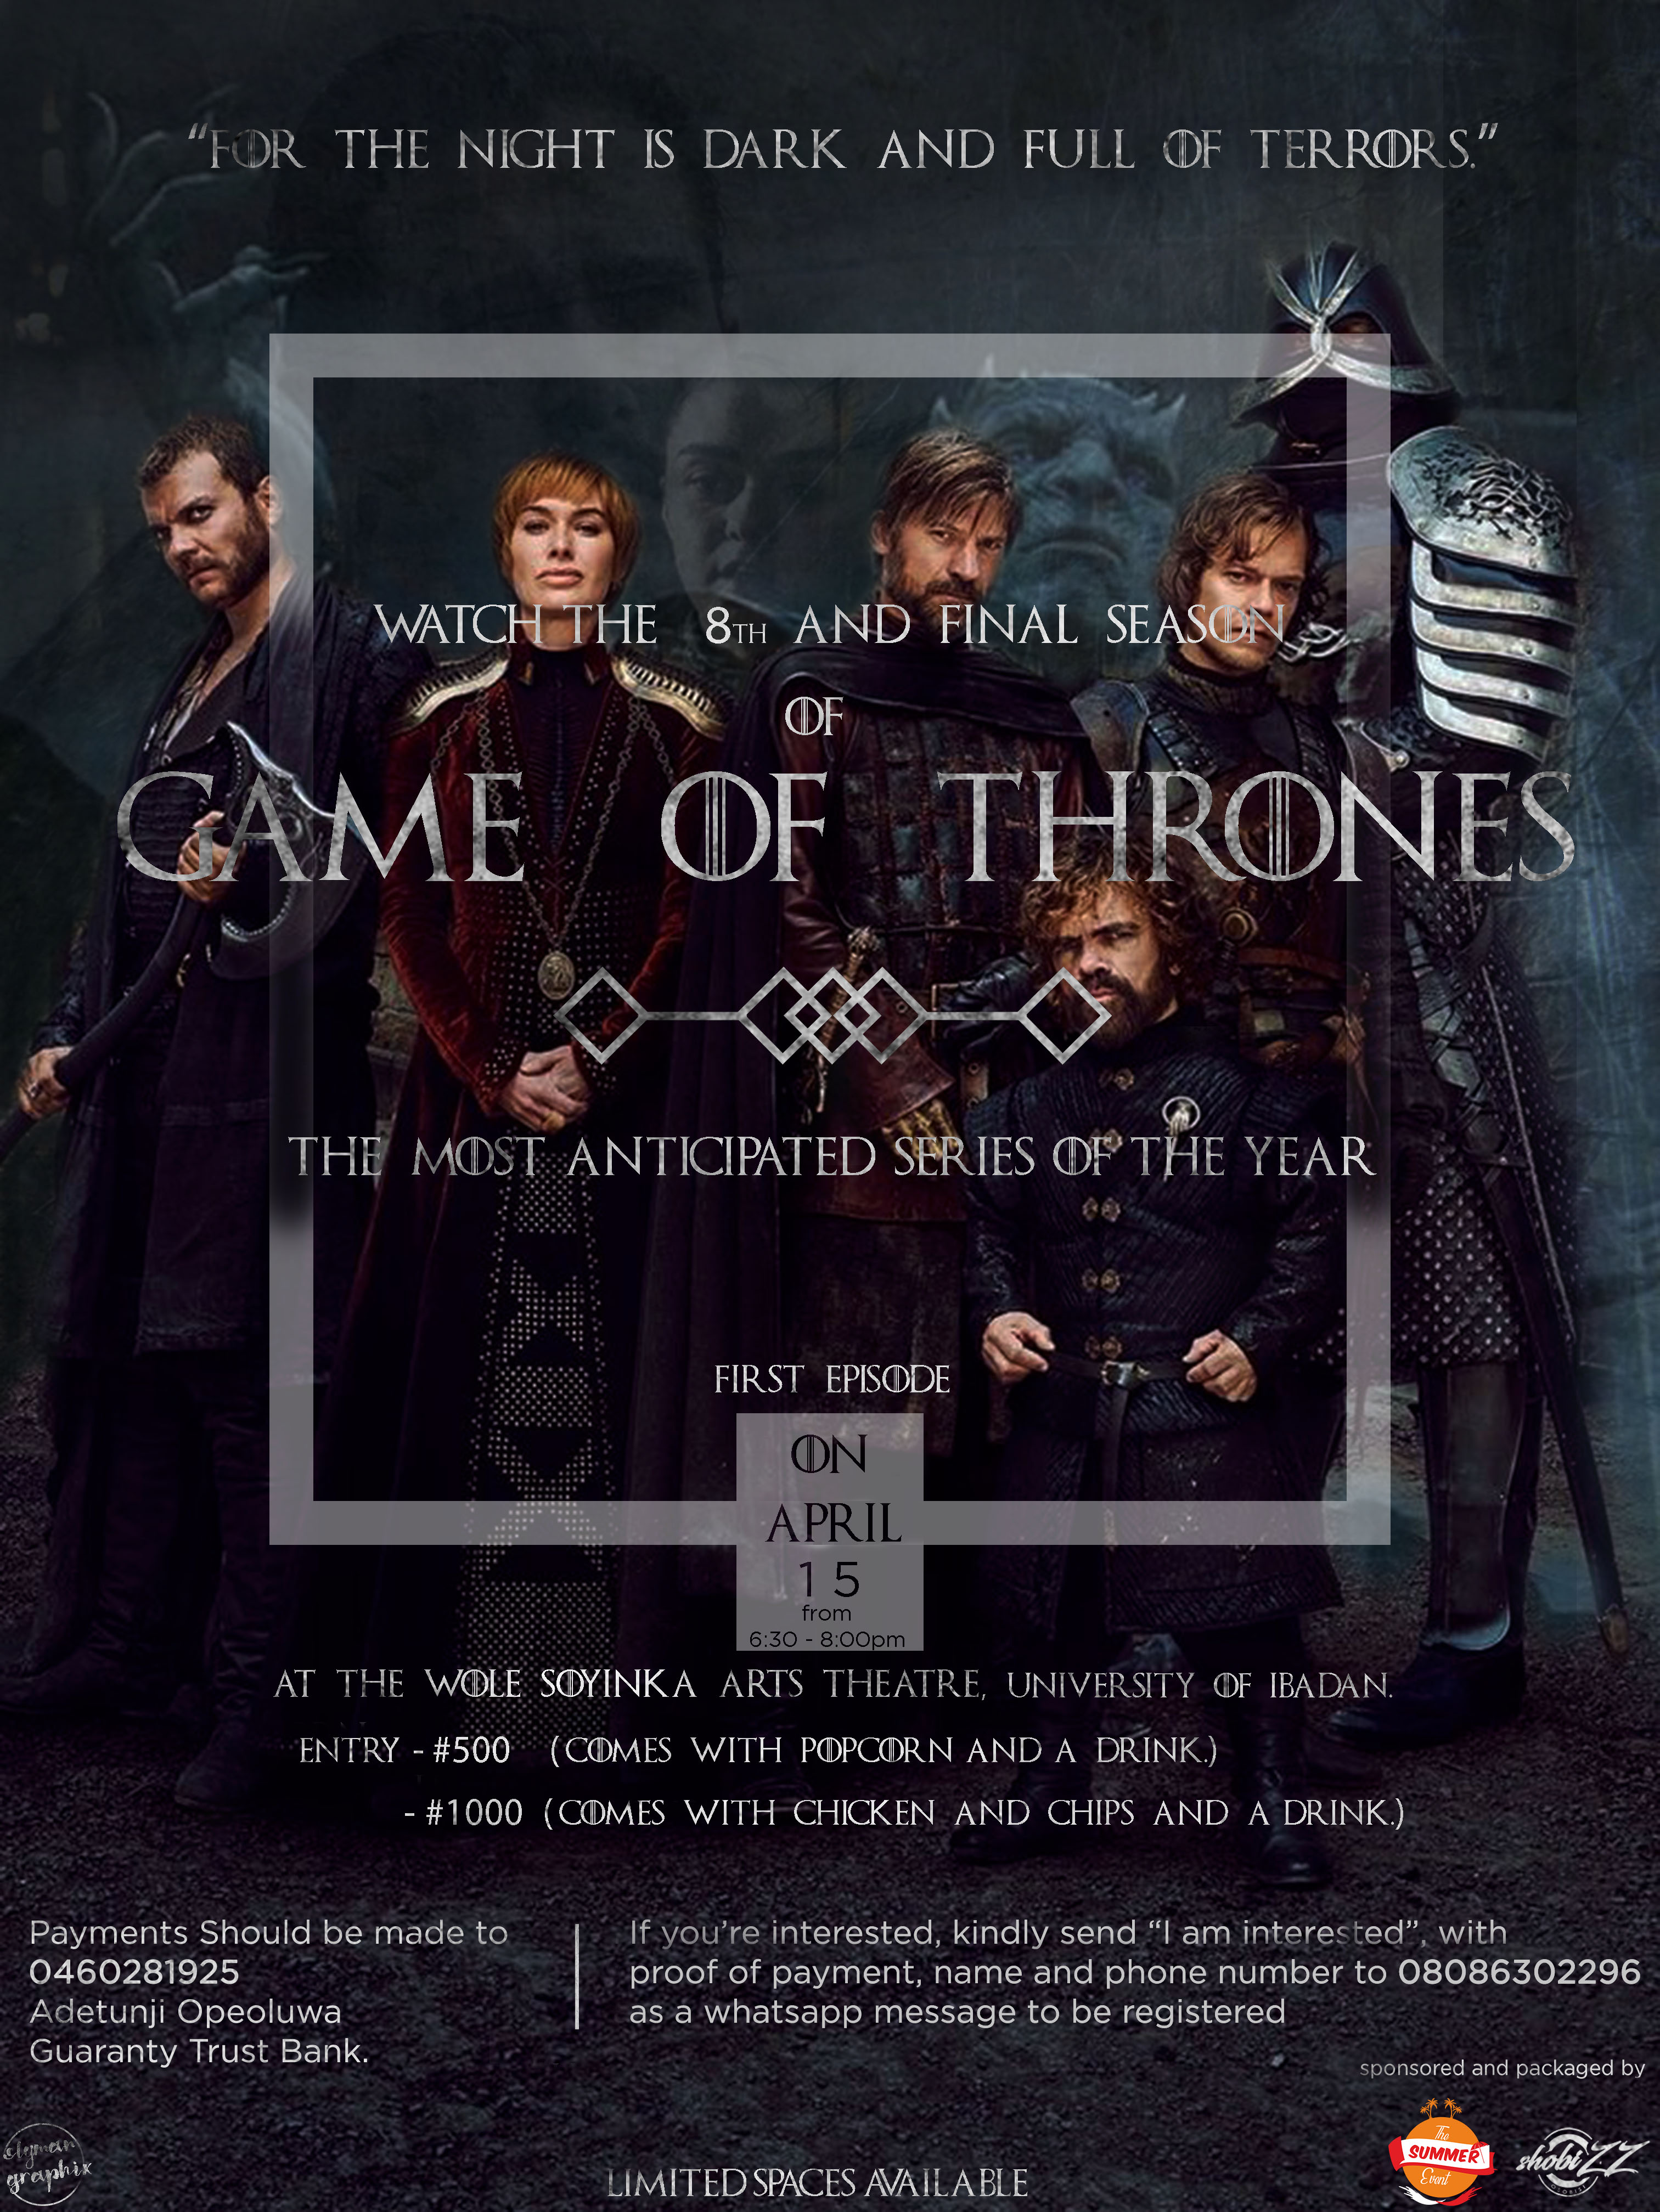 Game of Thrones Season 8 premiere Post free event in Nigeria using tickethub.ng, buy and sell tickets to event